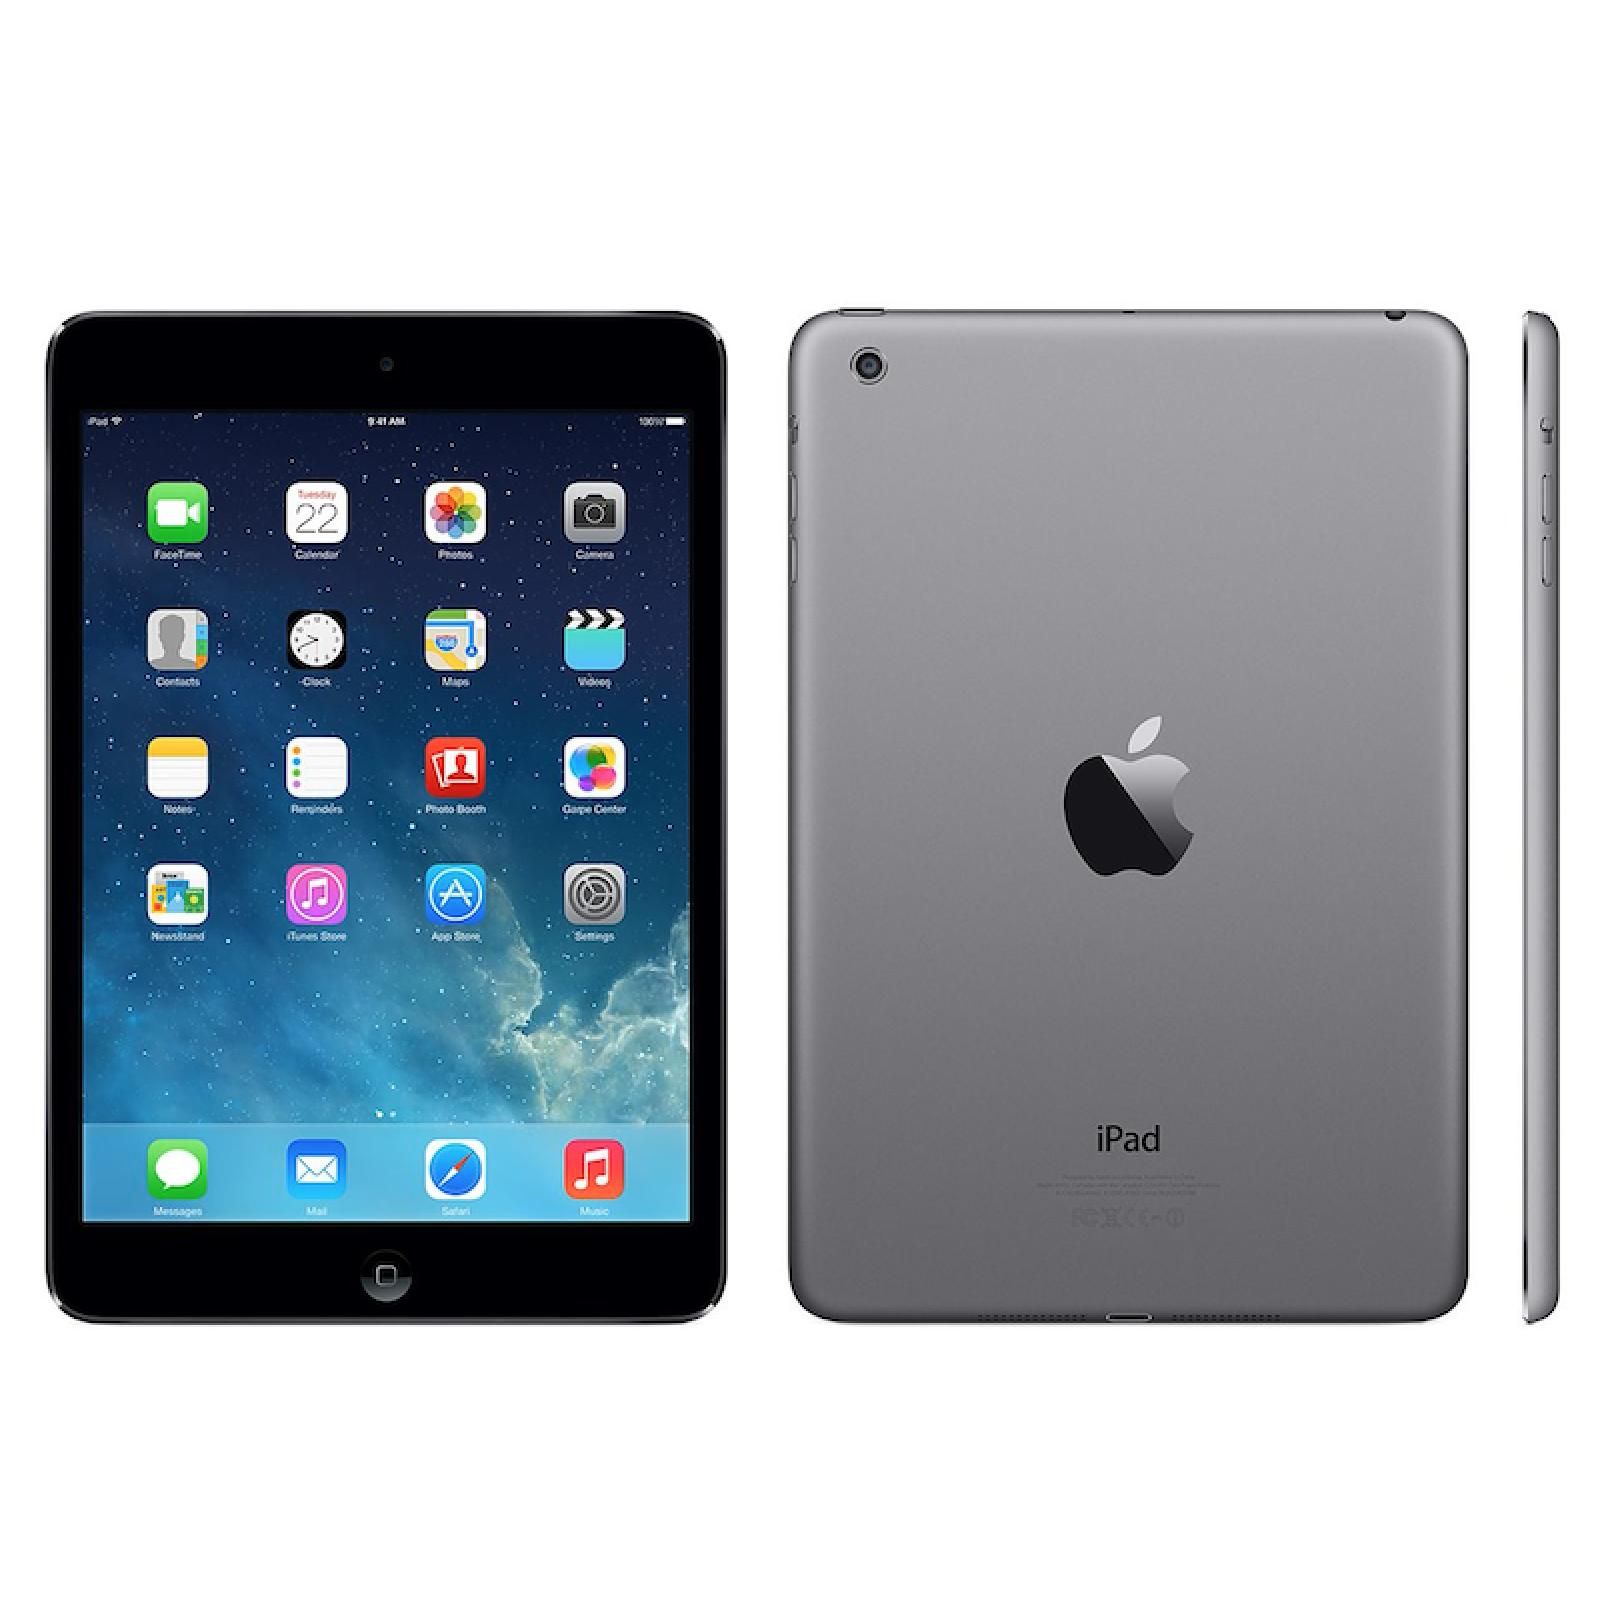 iPad mini 2 32 GB - Wifi + 4G - Gris espacial - Libre